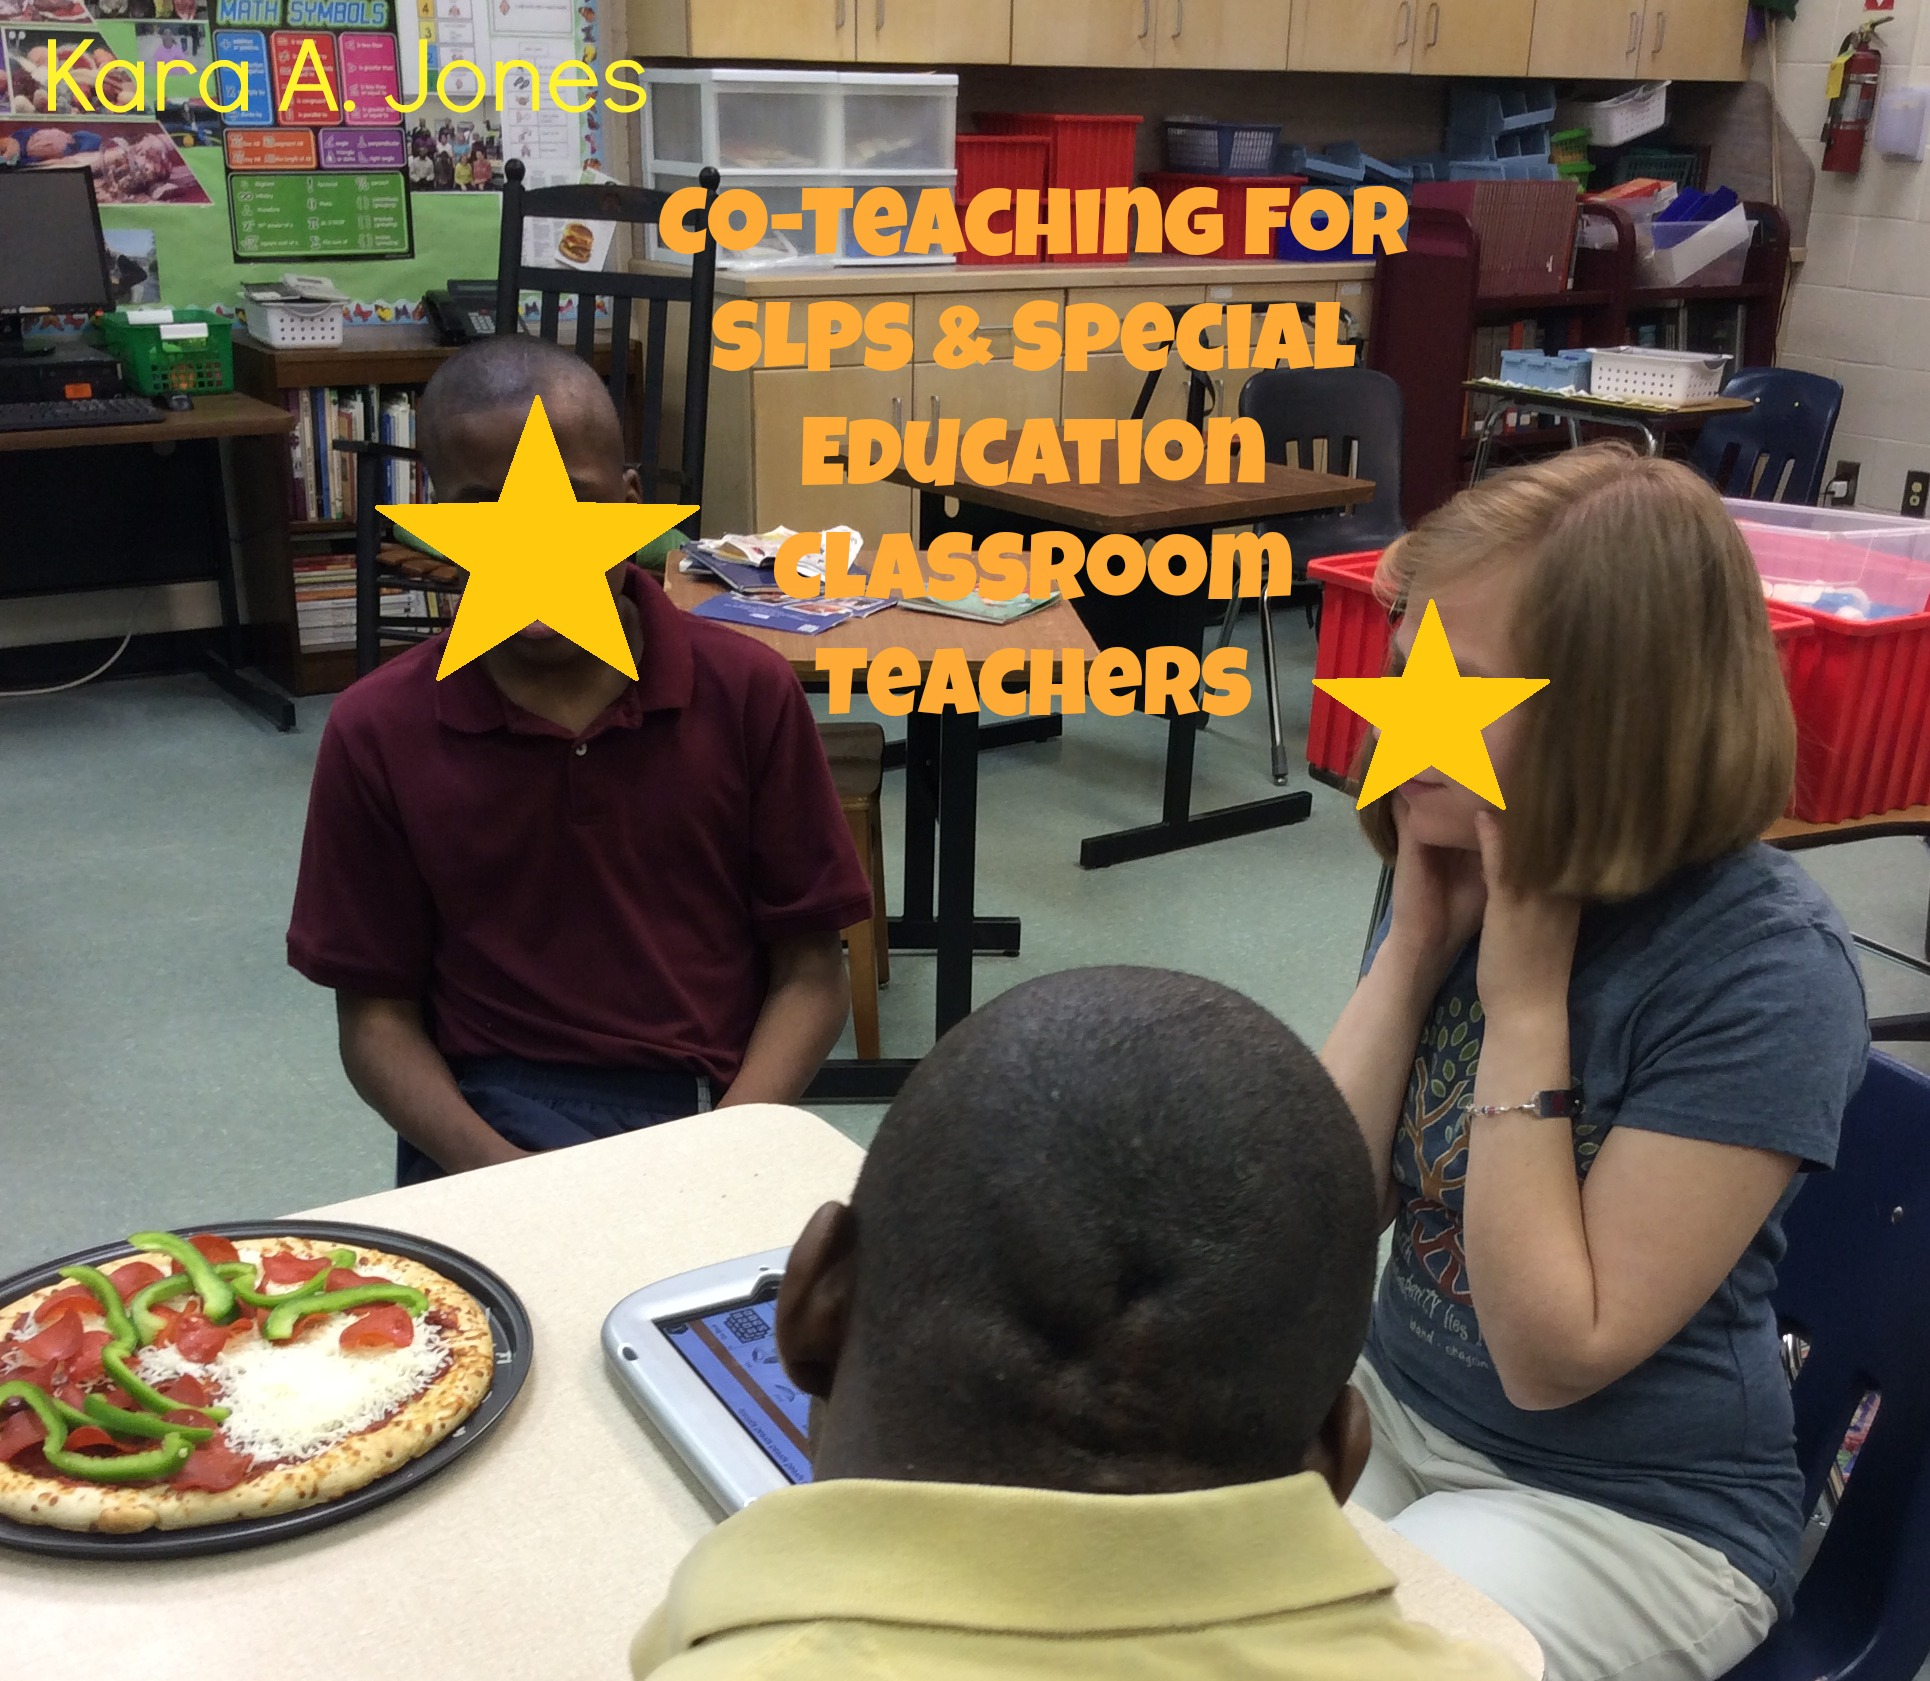 Co Teaching For Slps Amp Special Education Classroom